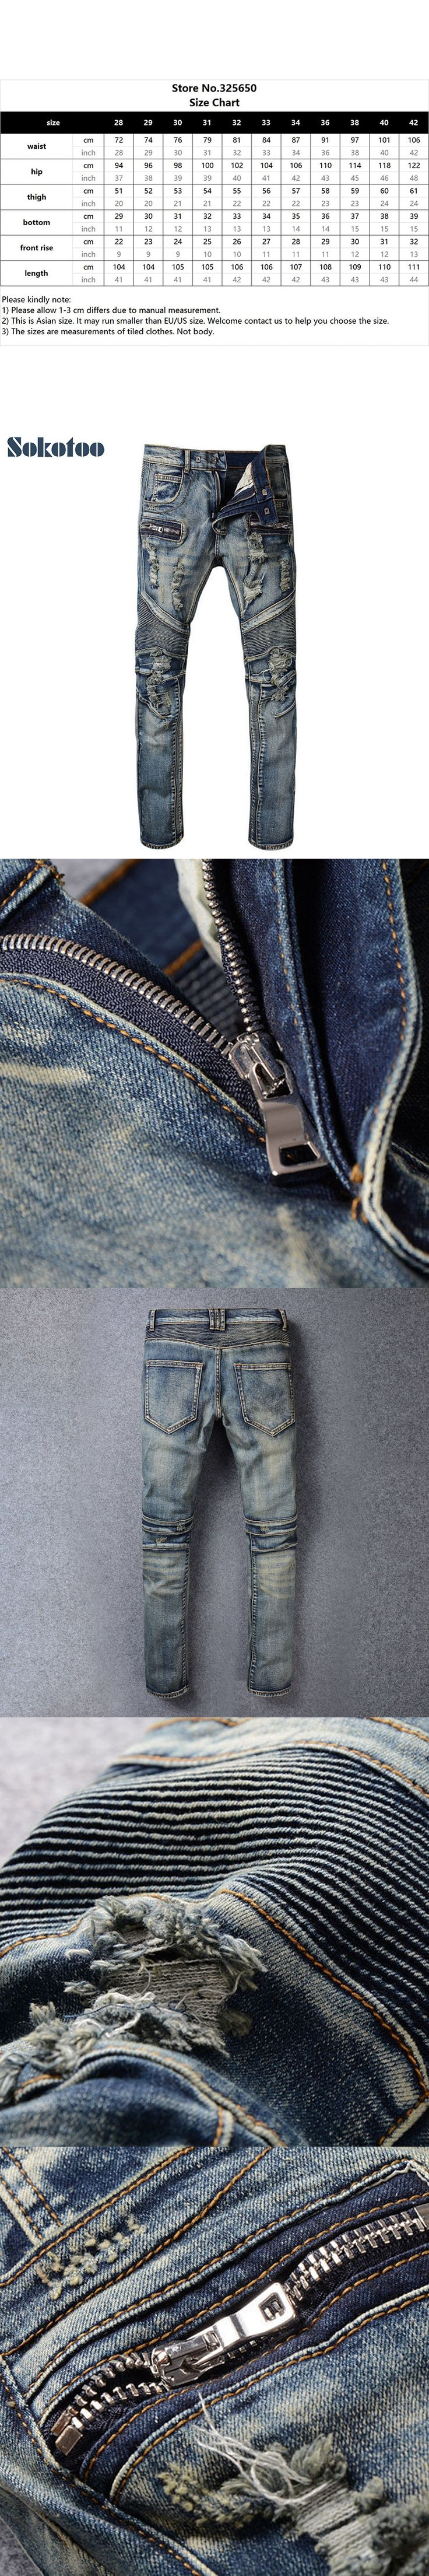 Sokotoo Men's casual holes ripped biker jeans Large size slim stretch denim pencil pants Motorcycle long trousers